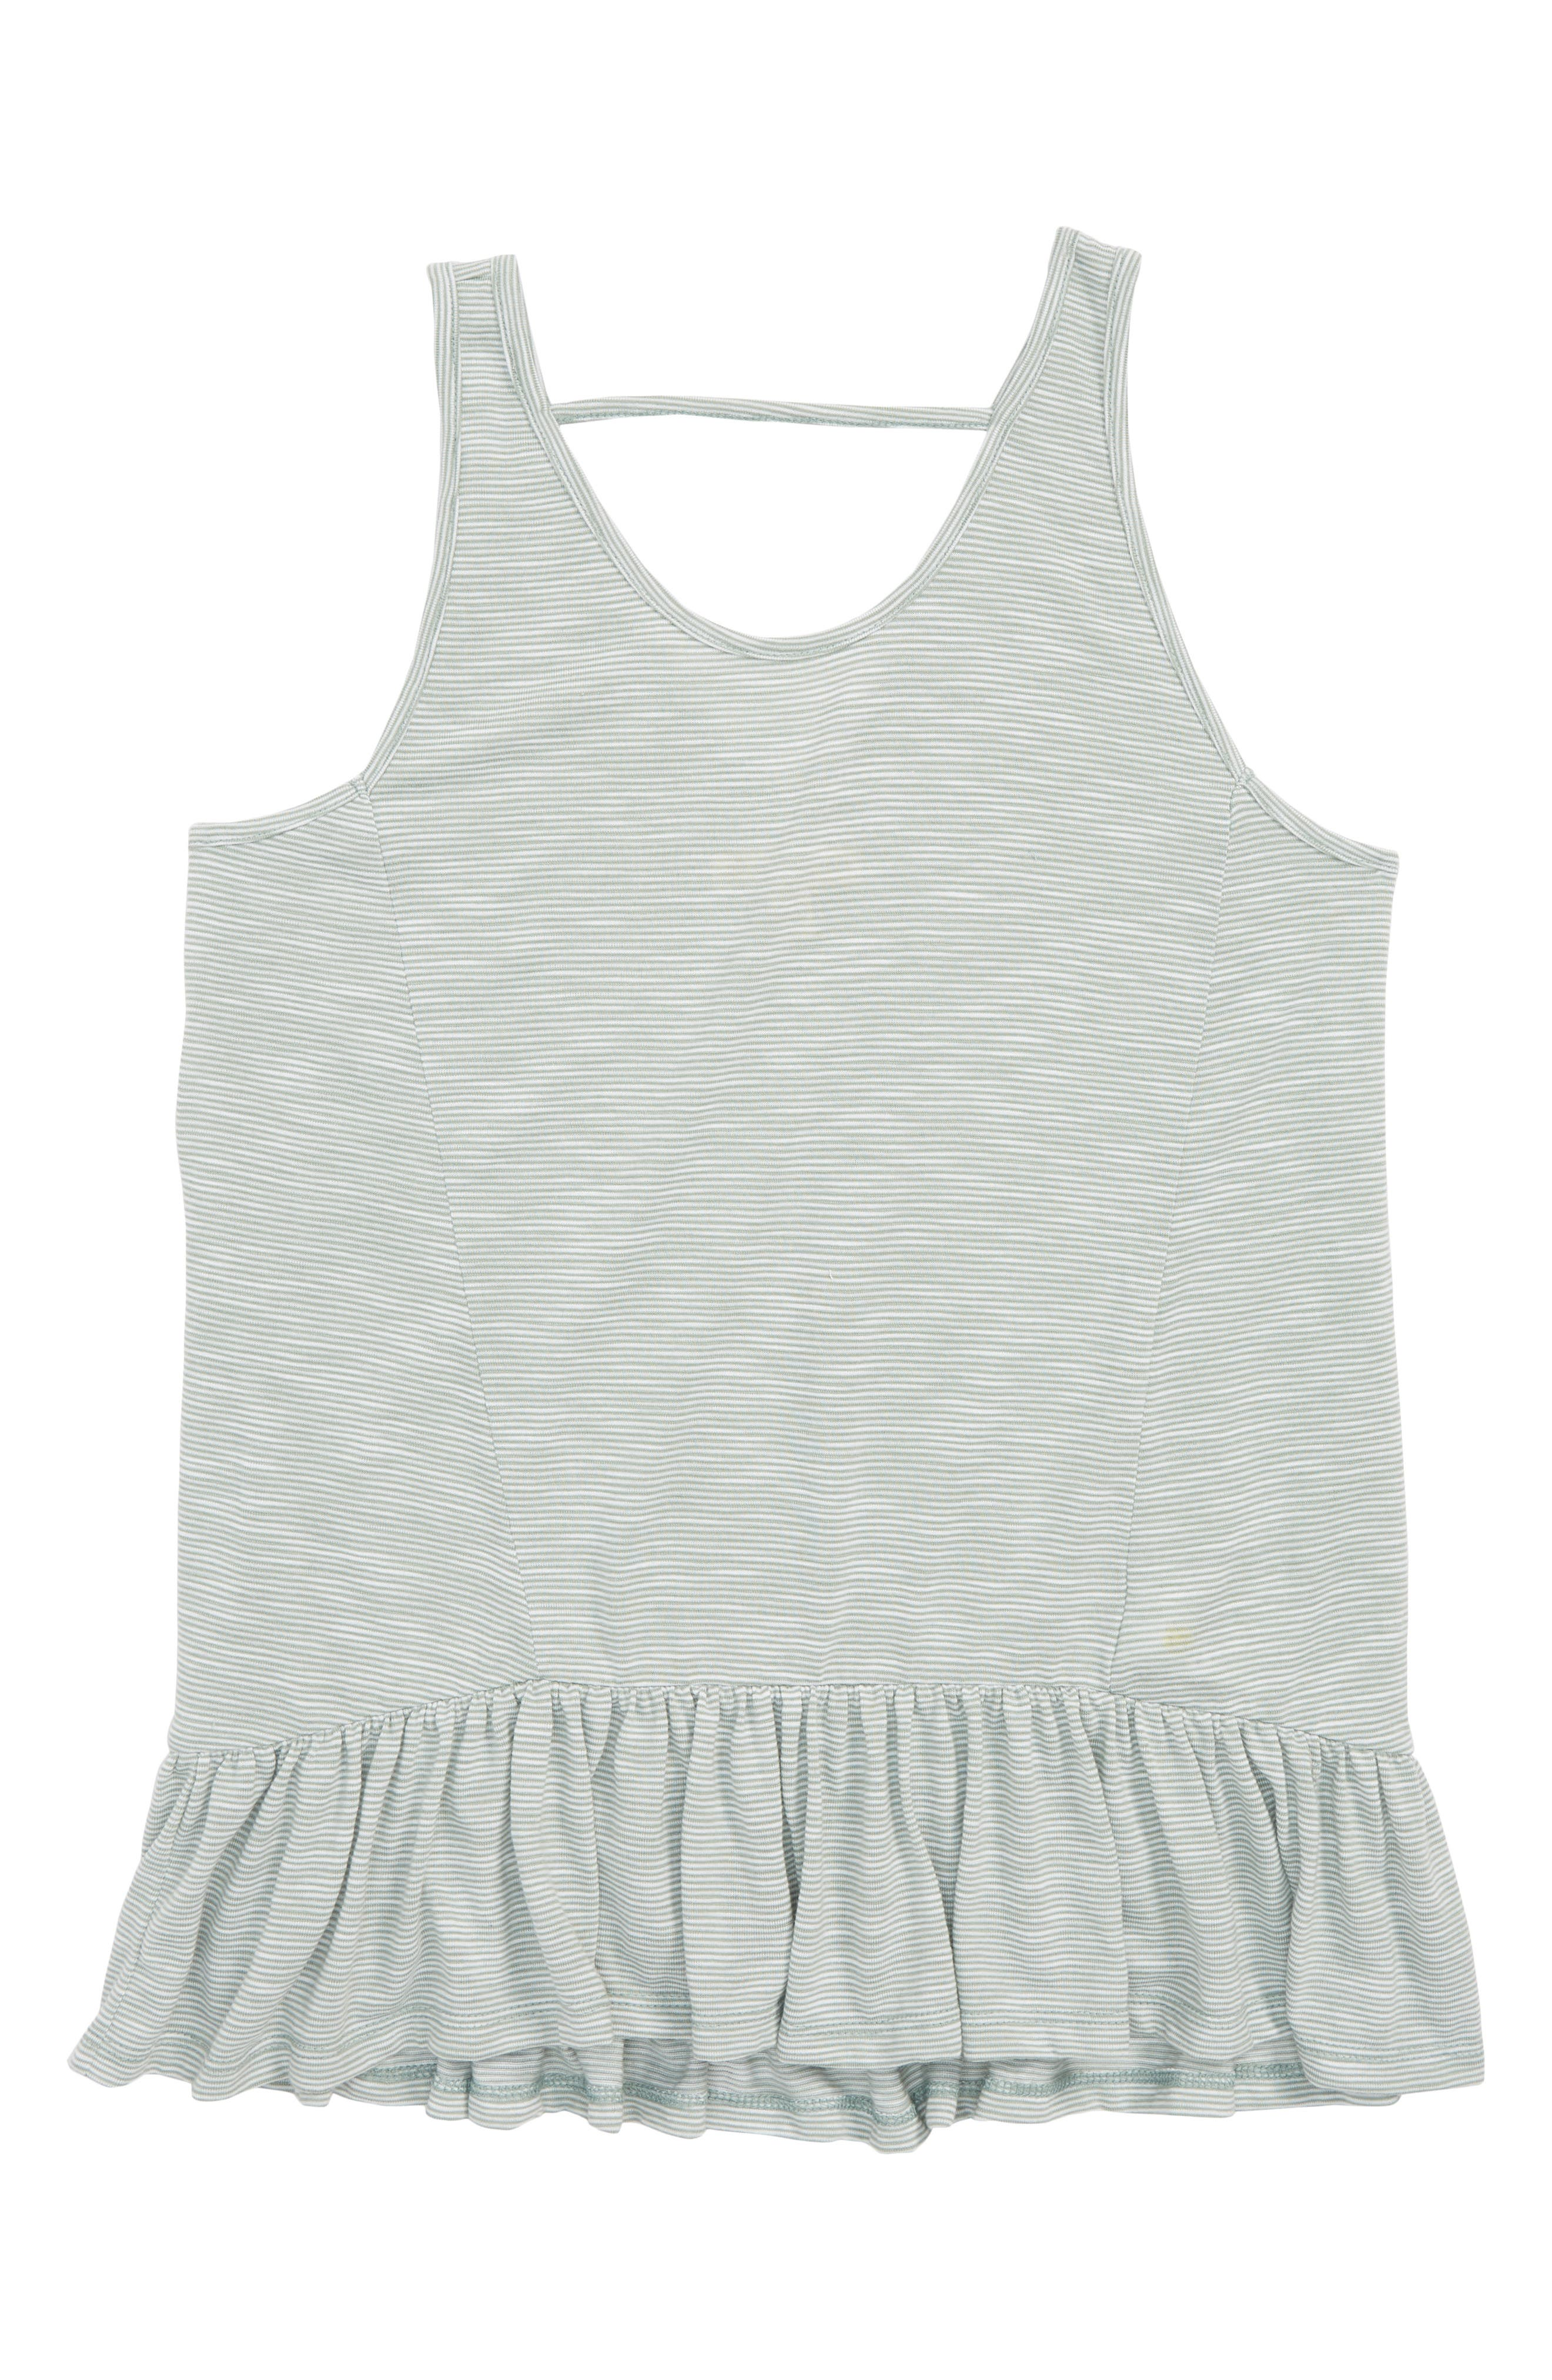 TUCKER + TATE,                             Stripe Peplum Tank,                             Main thumbnail 1, color,                             310